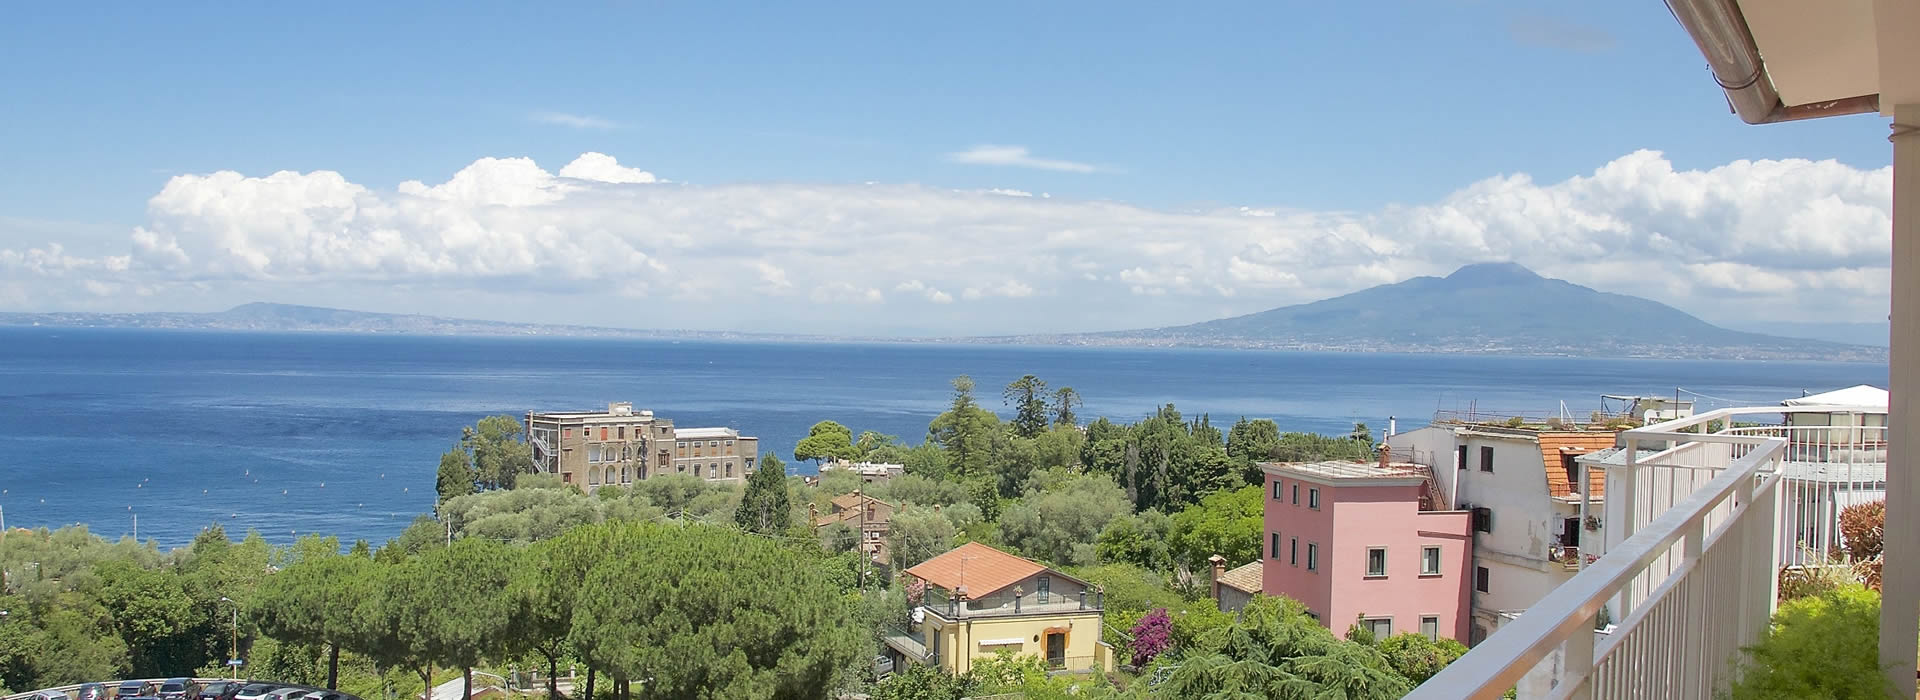 Get a drink or read a book in the area on perta Terrezza Tirrenia Hotel in Sorrento